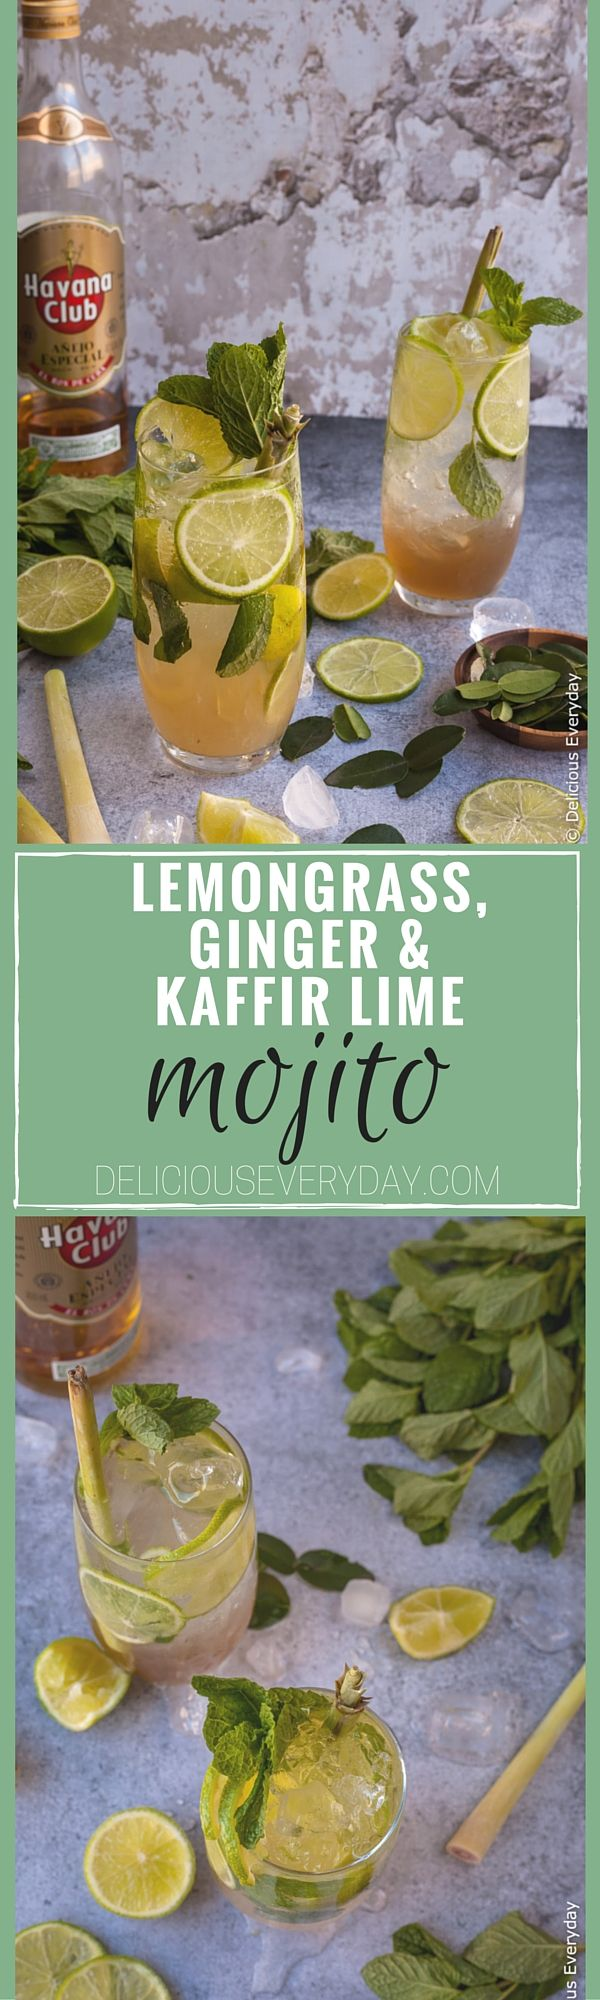 This Lemongrass, Kaffir Lime and Ginger Mojito is a beautiful update to the classic. Ginger adds a punchy kick while the lemongrass and kaffir lime add a lovely fragrant depth of flavour.